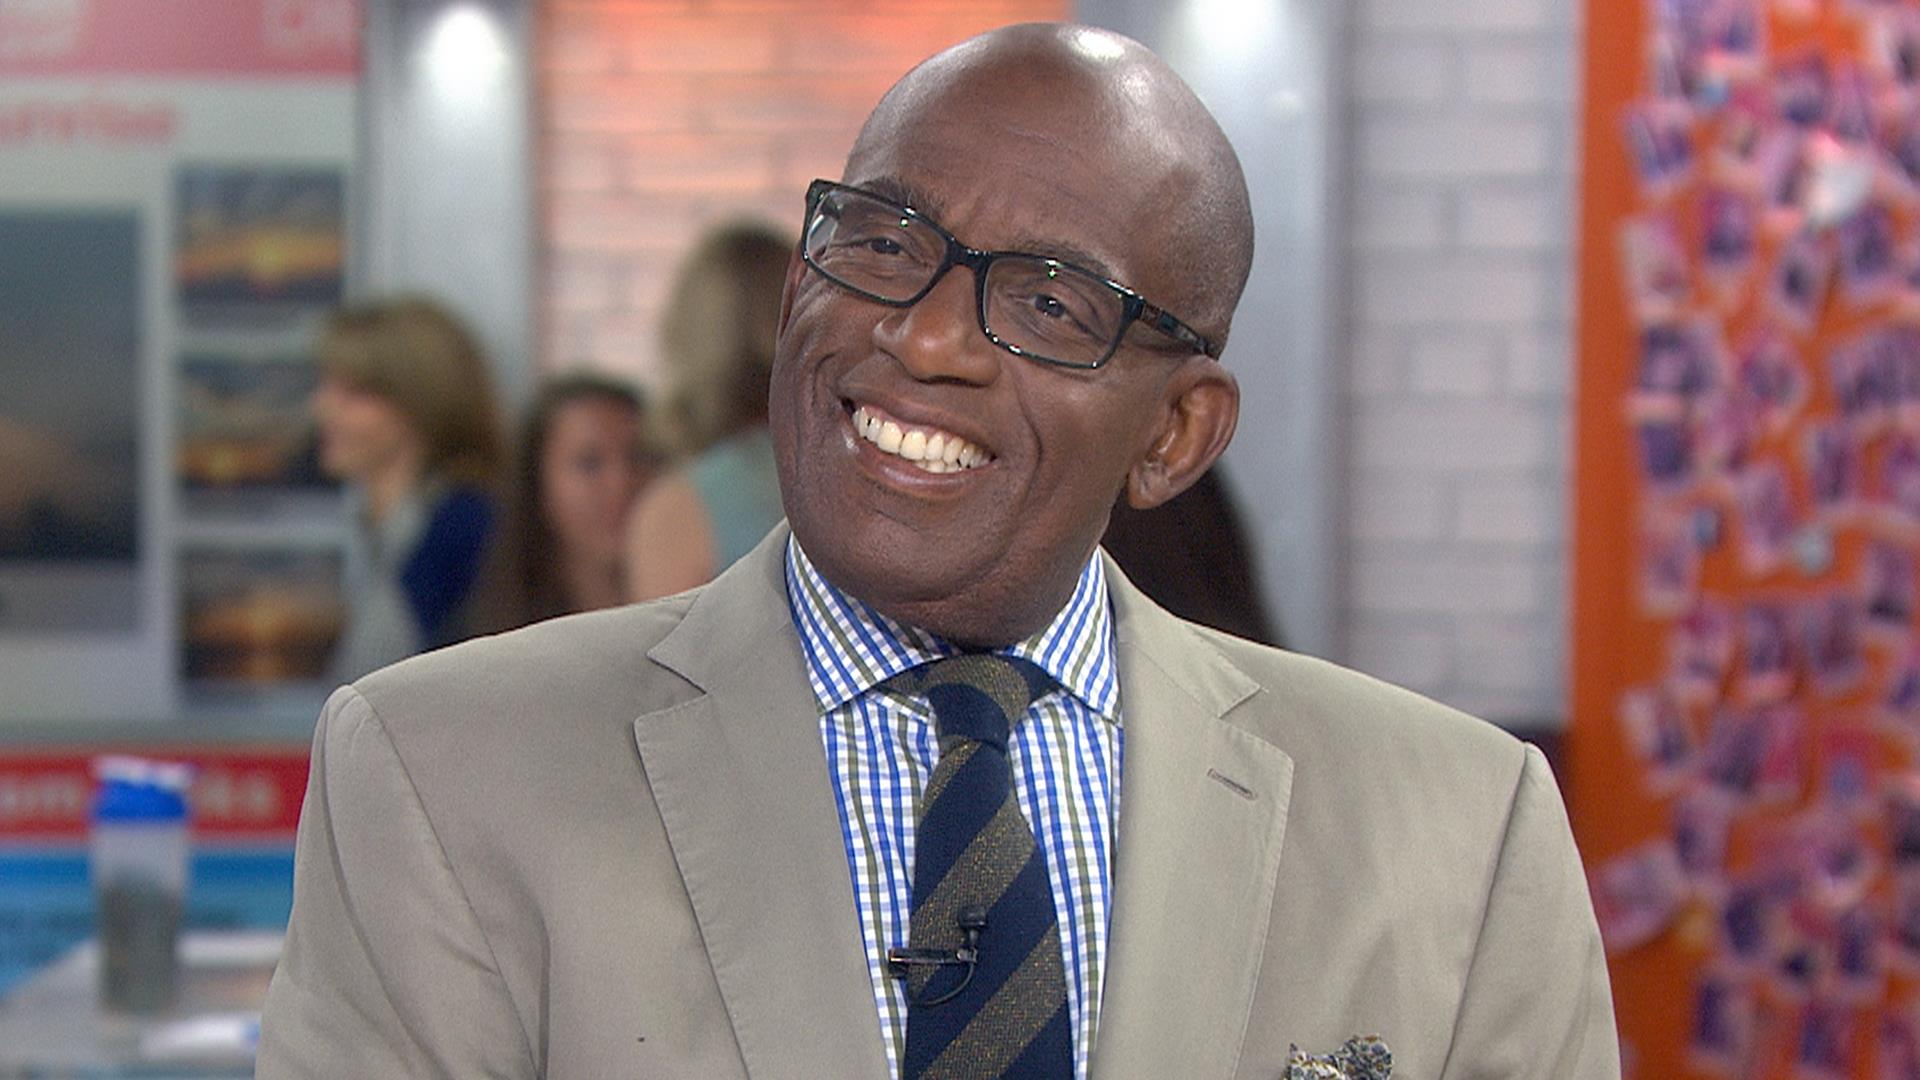 'Today' Fans Stunned by Al Roker's 'Dapper' Appearance